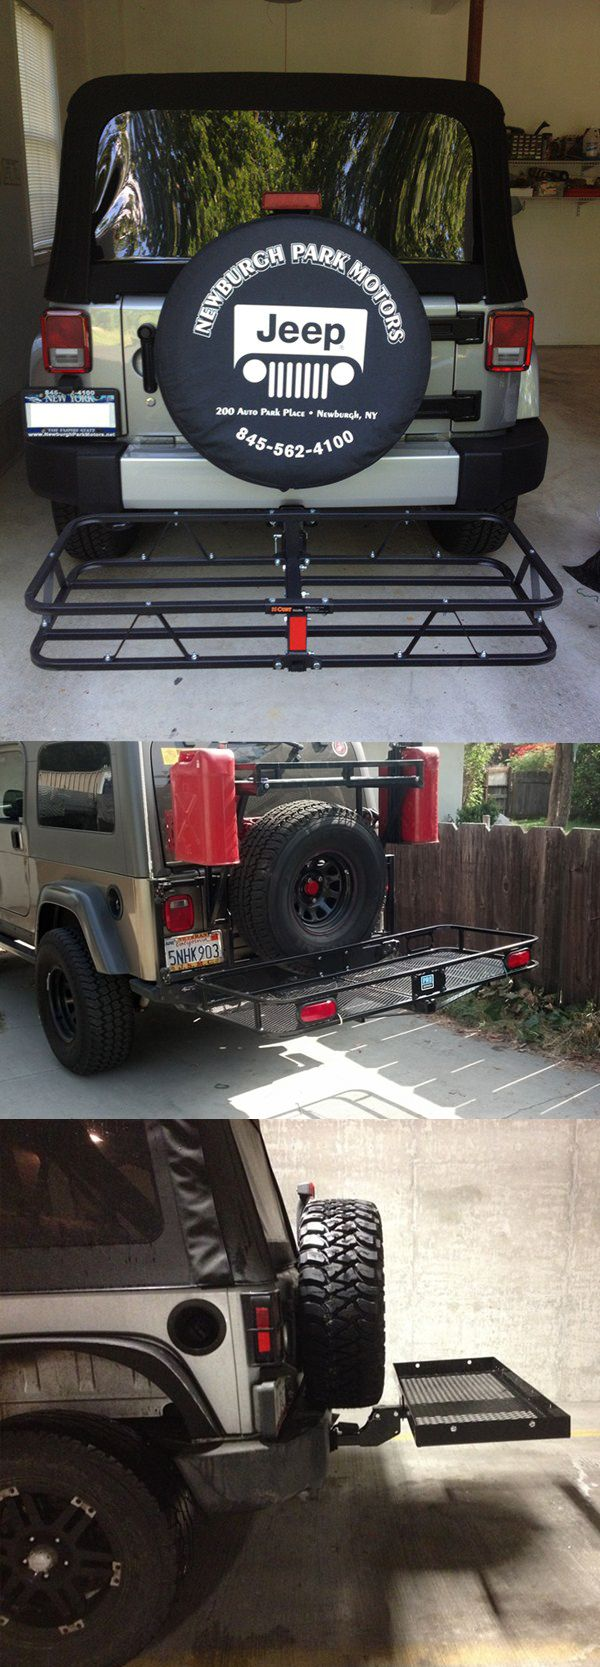 Top 20 Most Popular Jeep Cargo Carriers:  Ensure that your camping, hiking, fishing and other gear needed for a good adventure gets to and from the destination with some heavy-duty cargo carriers!